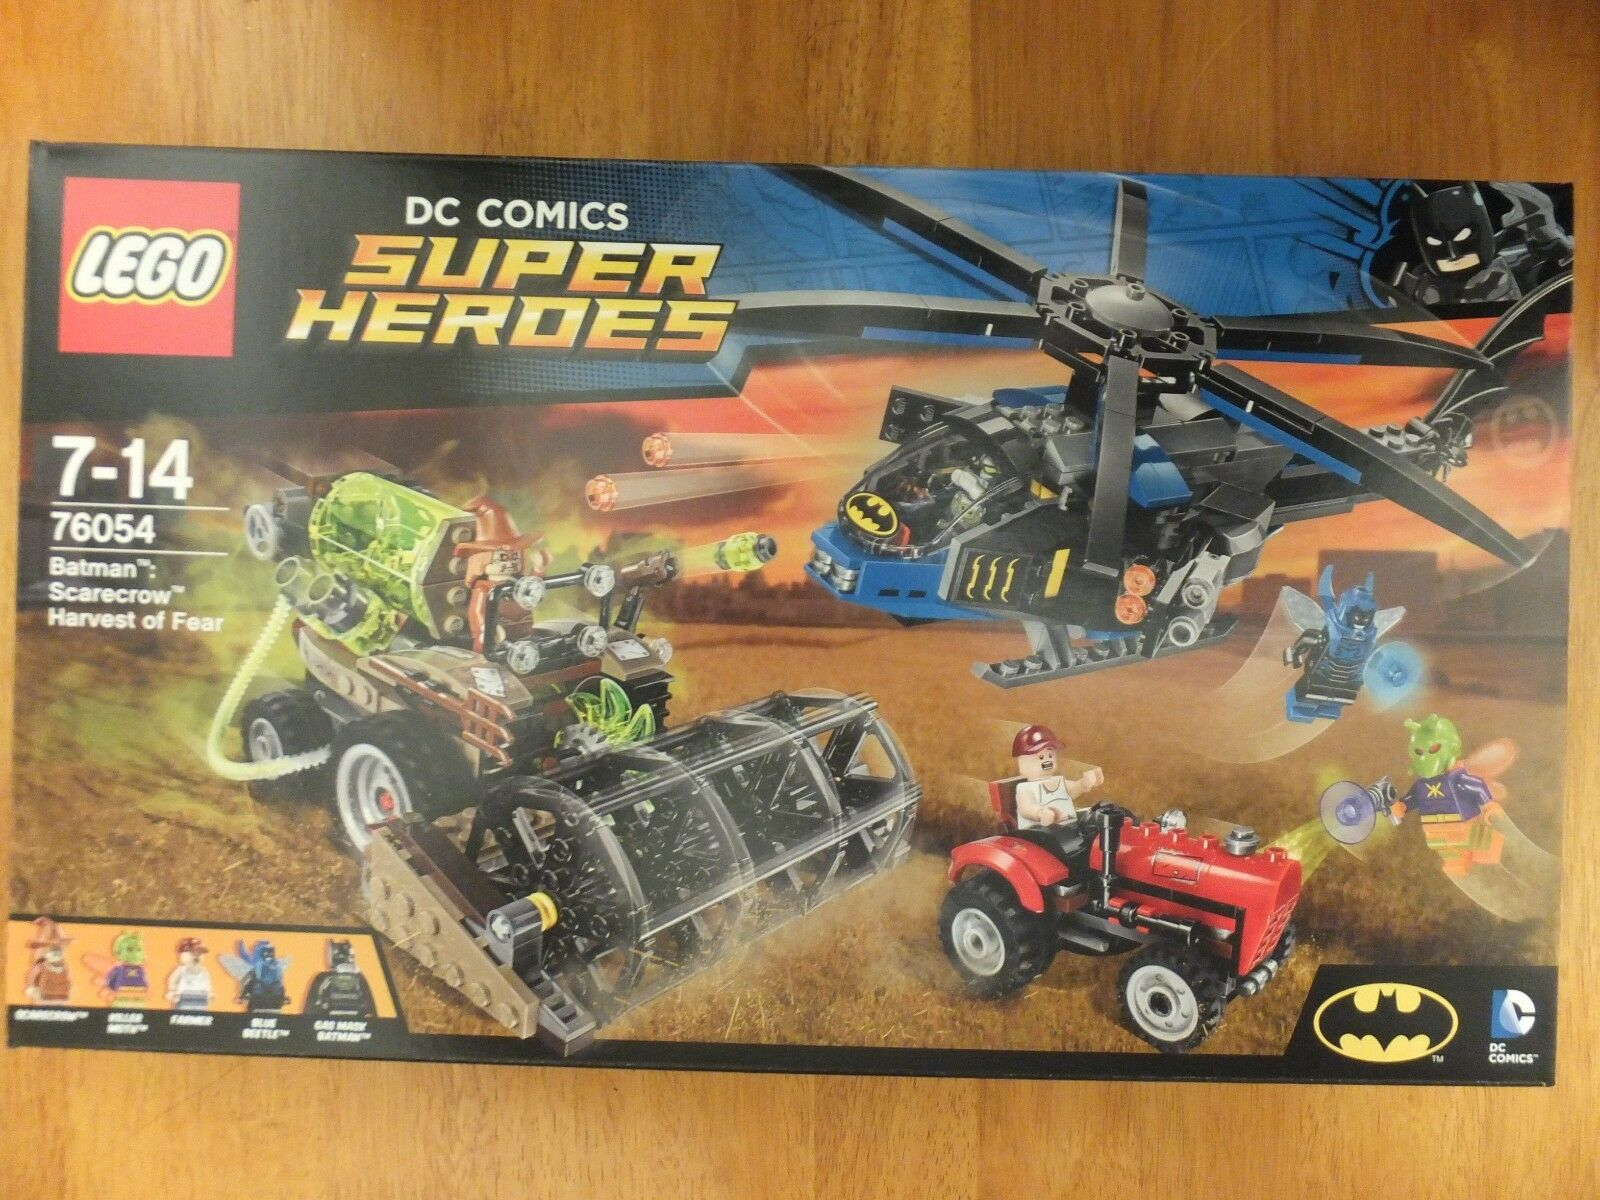 Lego 76054 DC Comics Super Heroes Batman Scarecrow Harvest Of Fear Set